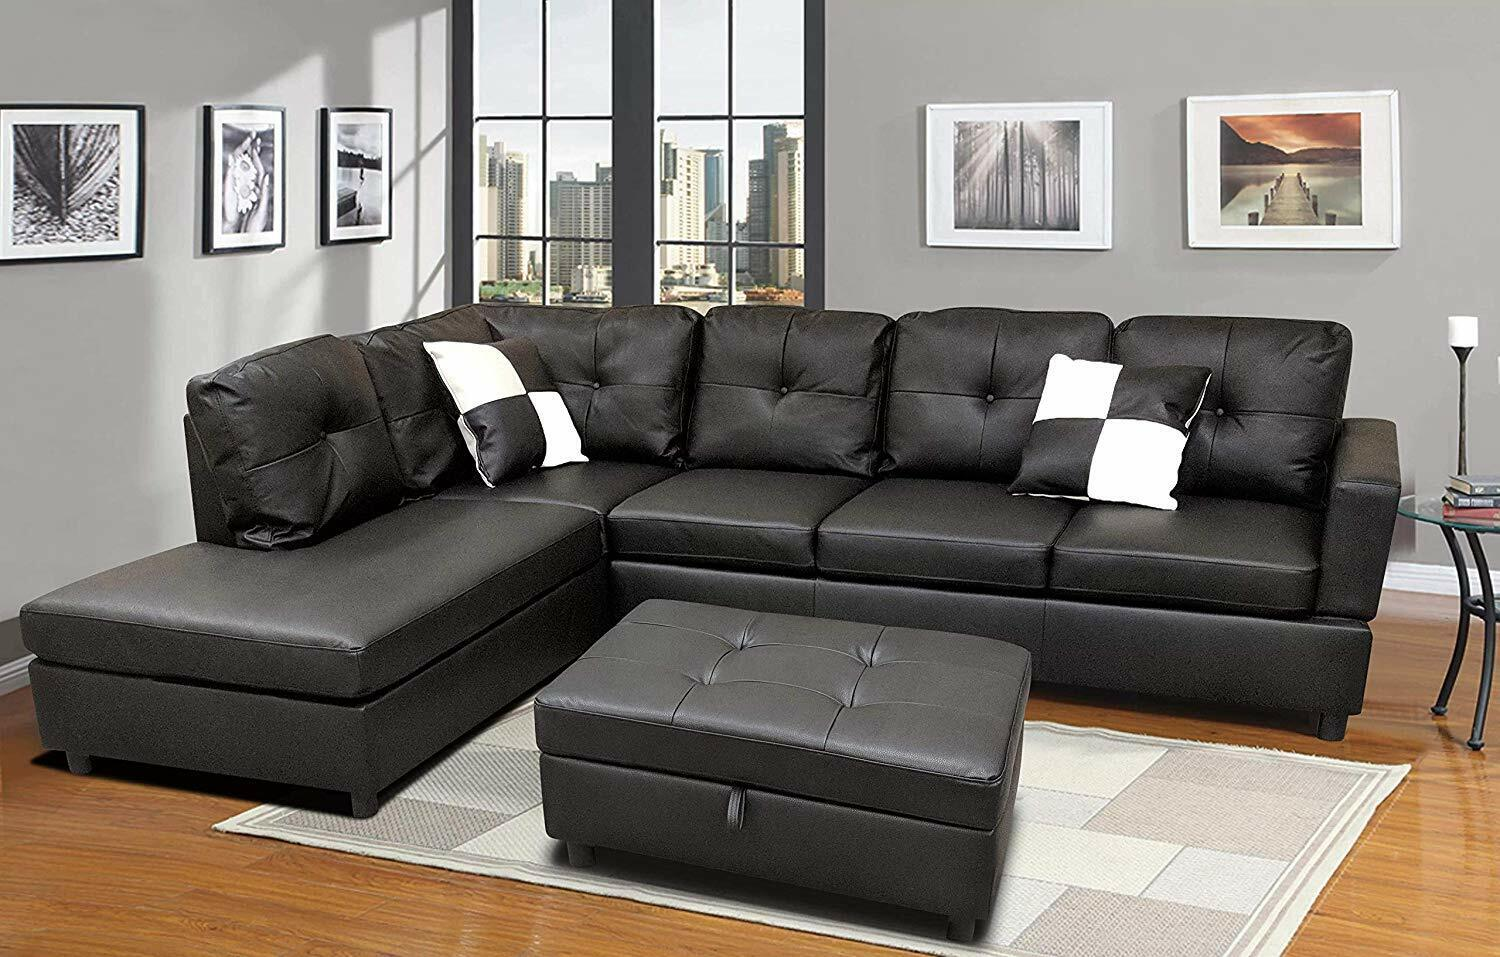 Modern Real Leather Sectional Sofa L